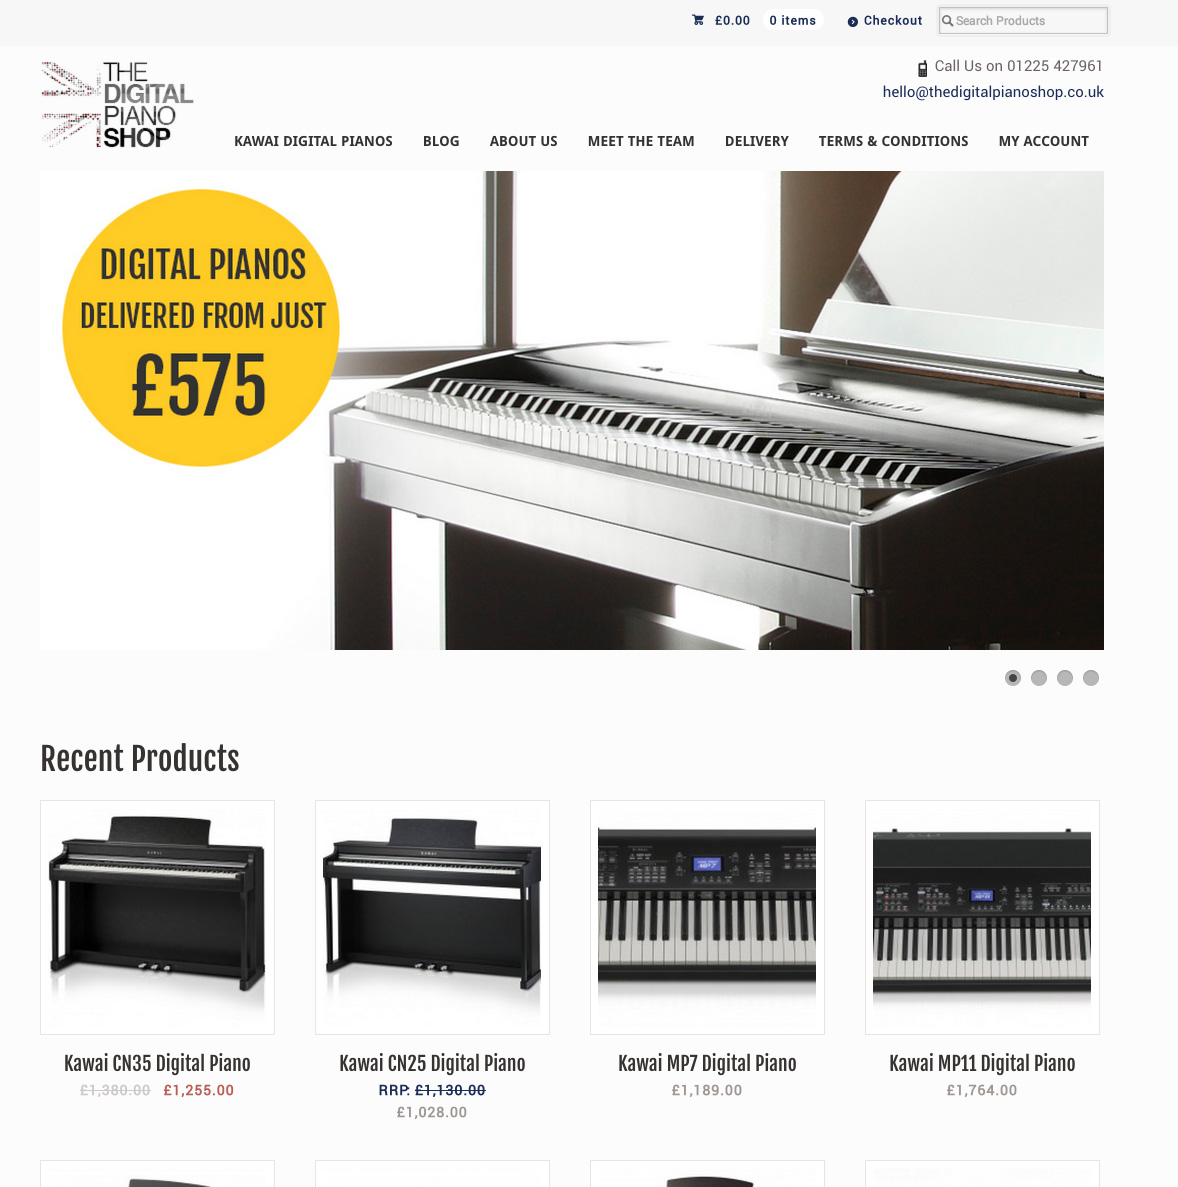 A screen shot of The Digital Piano Shop